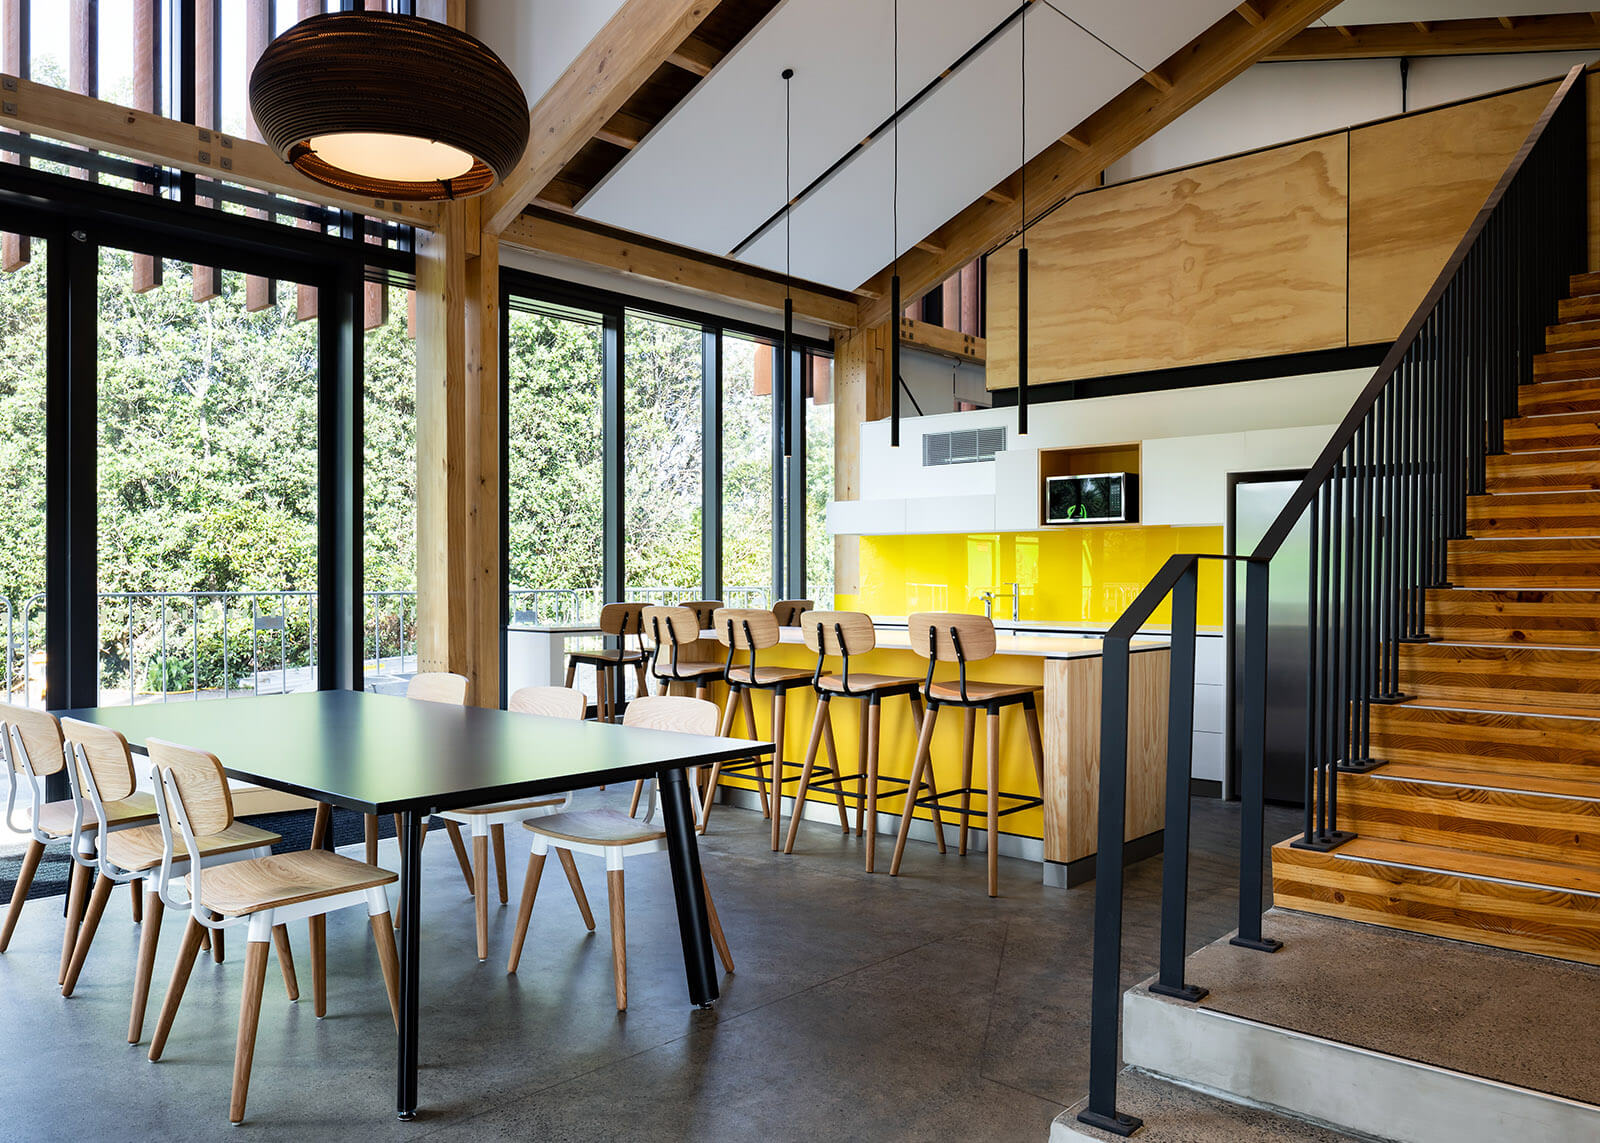 Informal collaboration areas create space for teams to come together